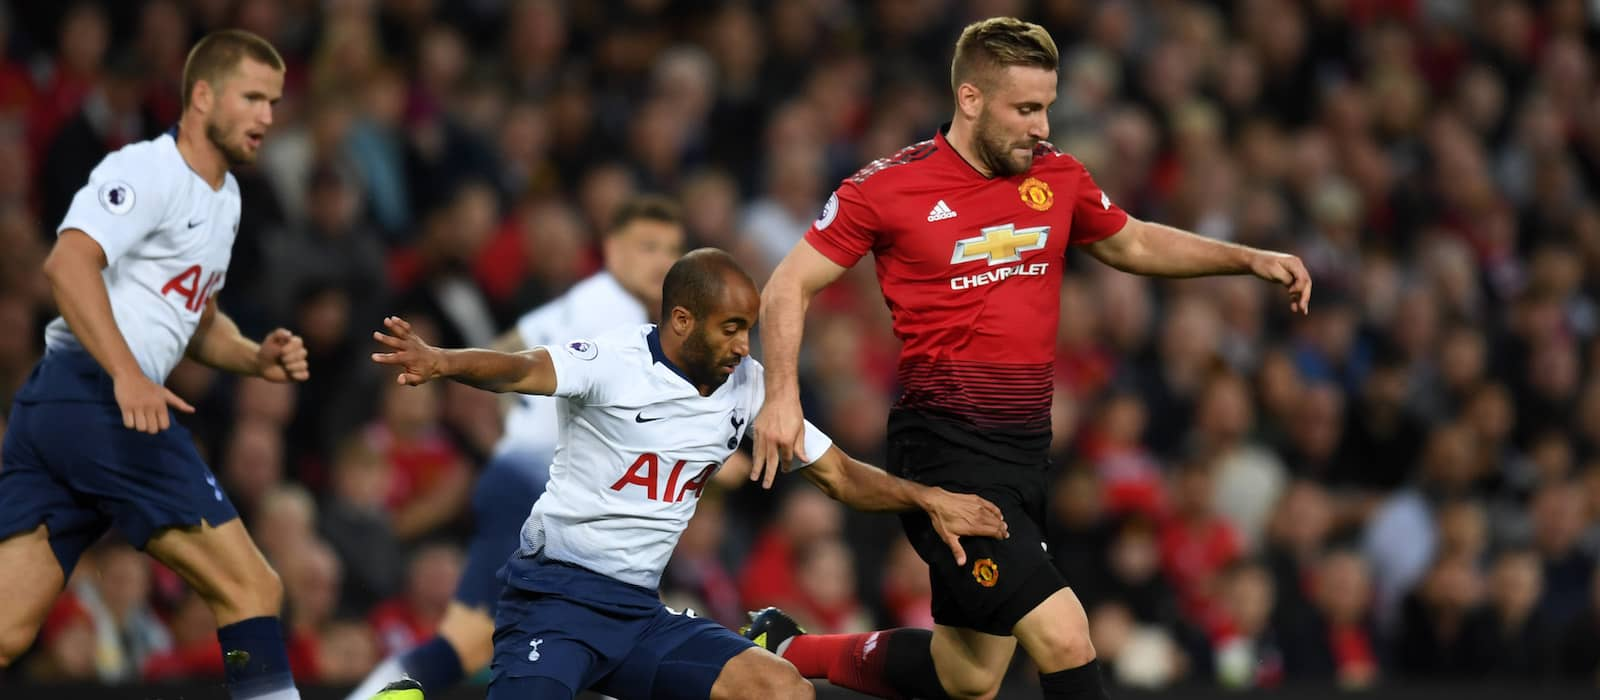 Luke Shaw called up to England squad at the expense of Ashley Young